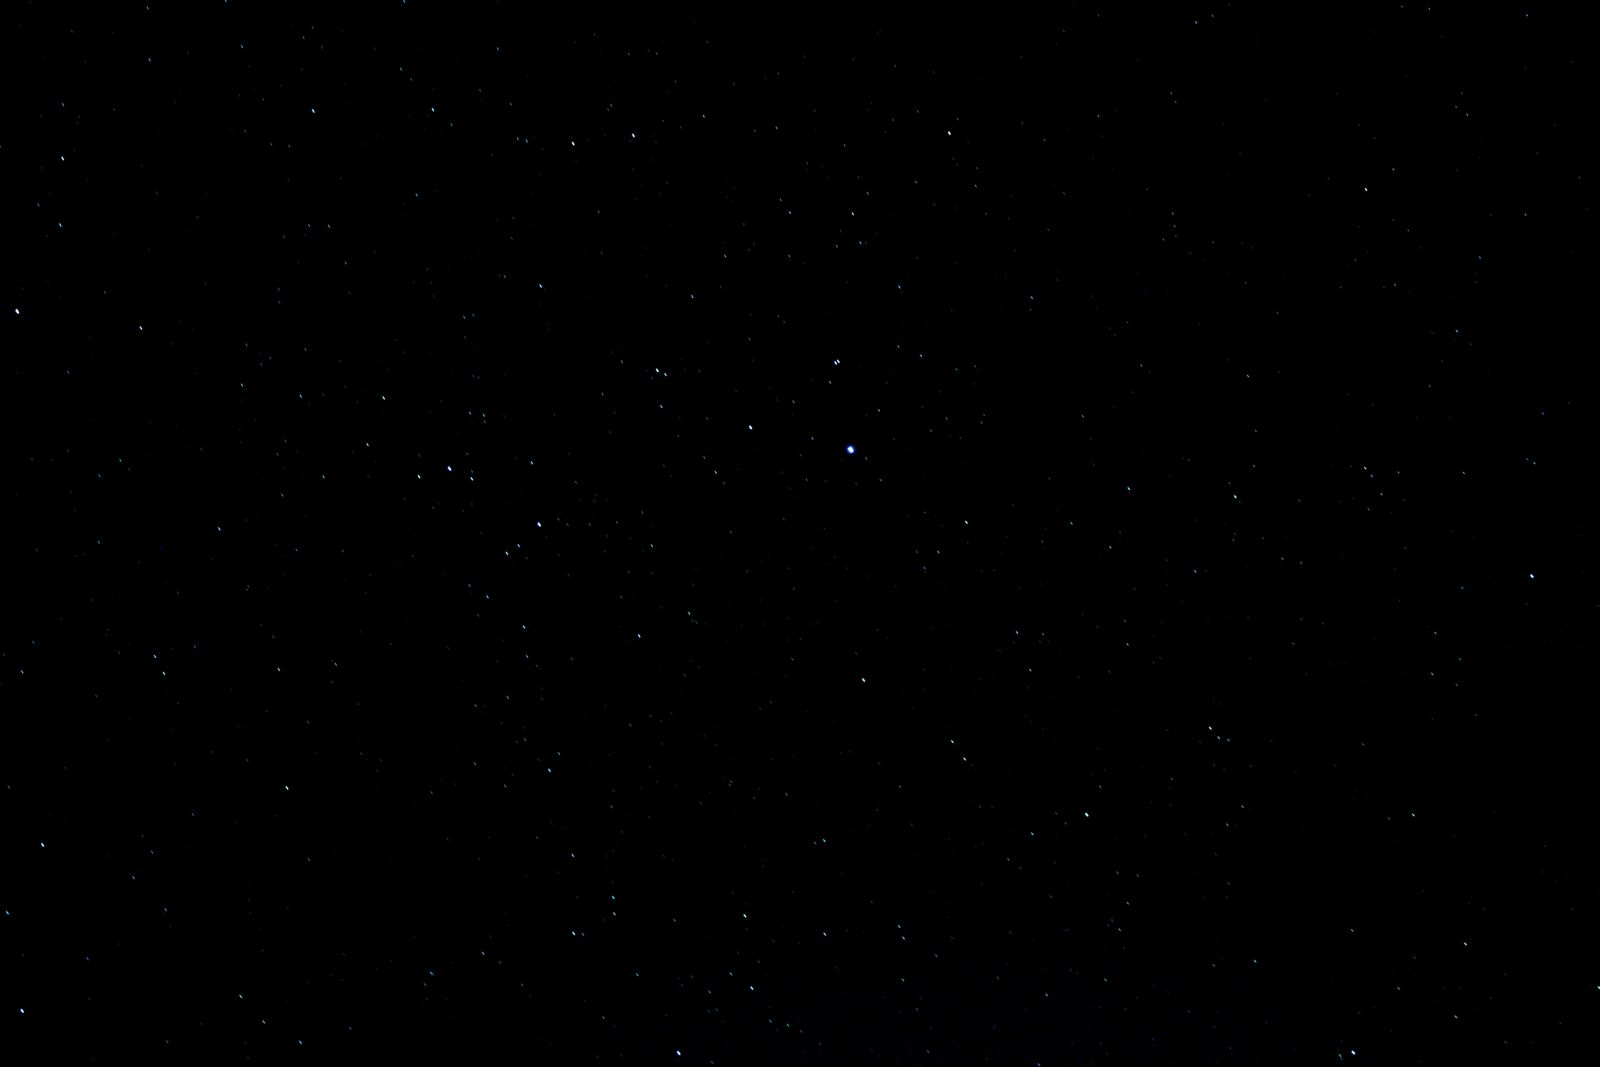 first attempt at a star picture